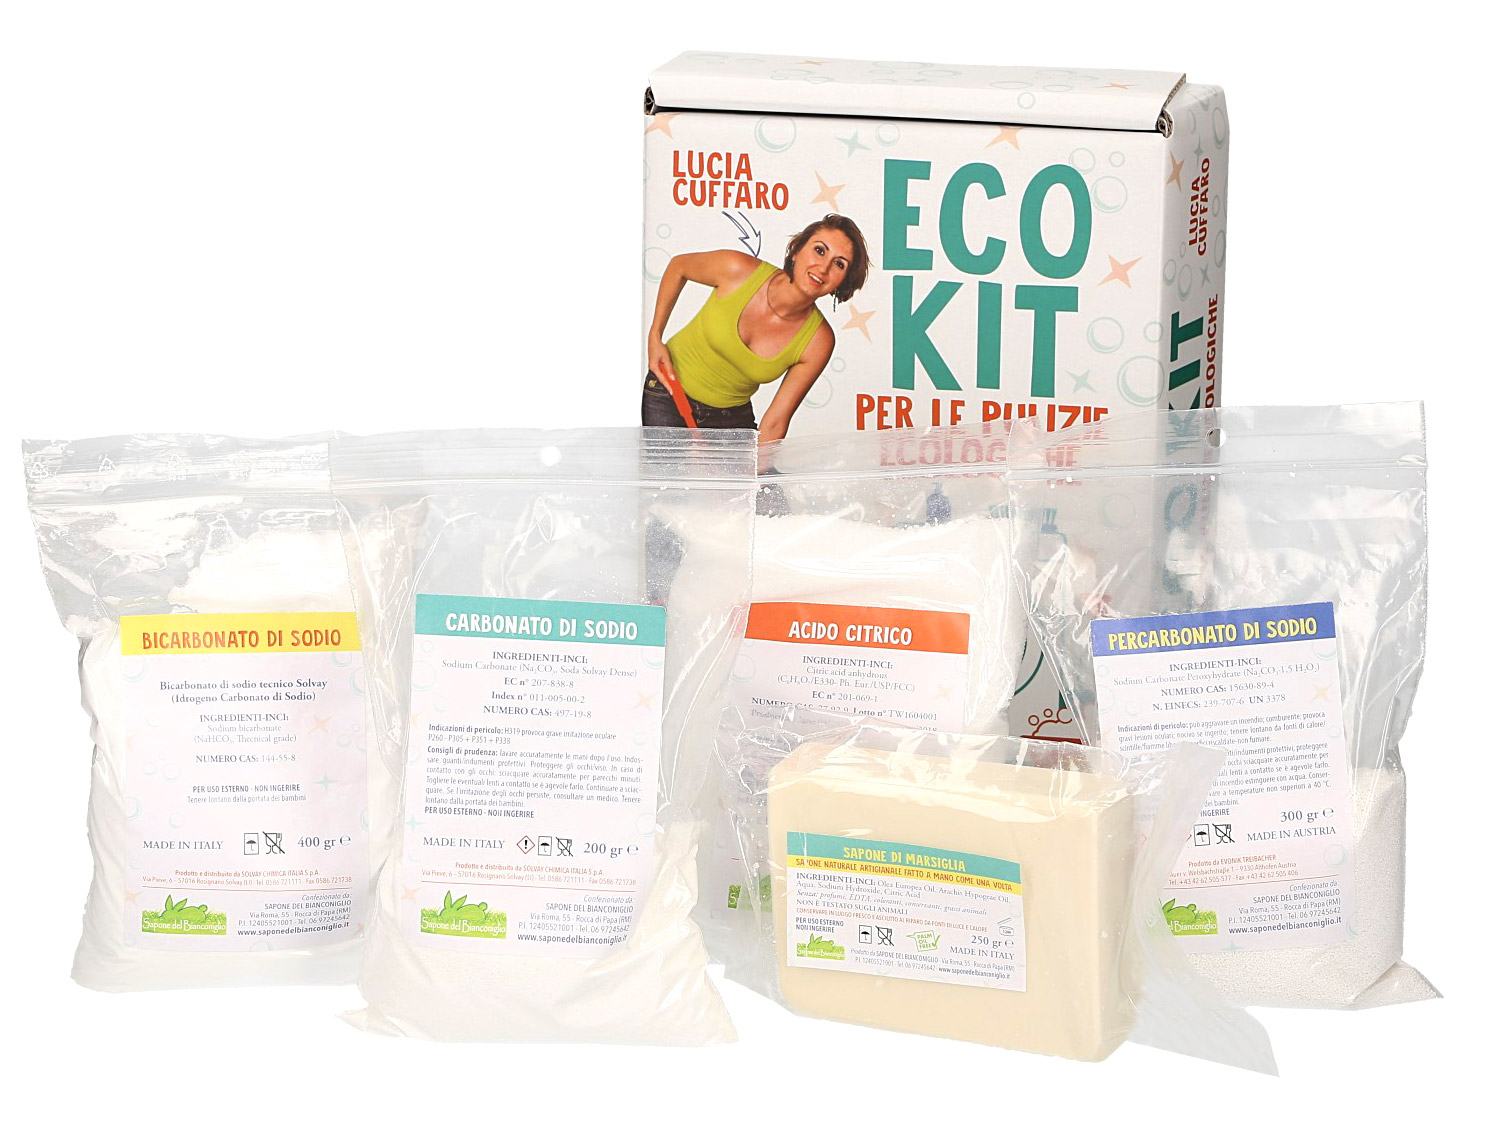 Eco Kit Detersivi Cuffaro